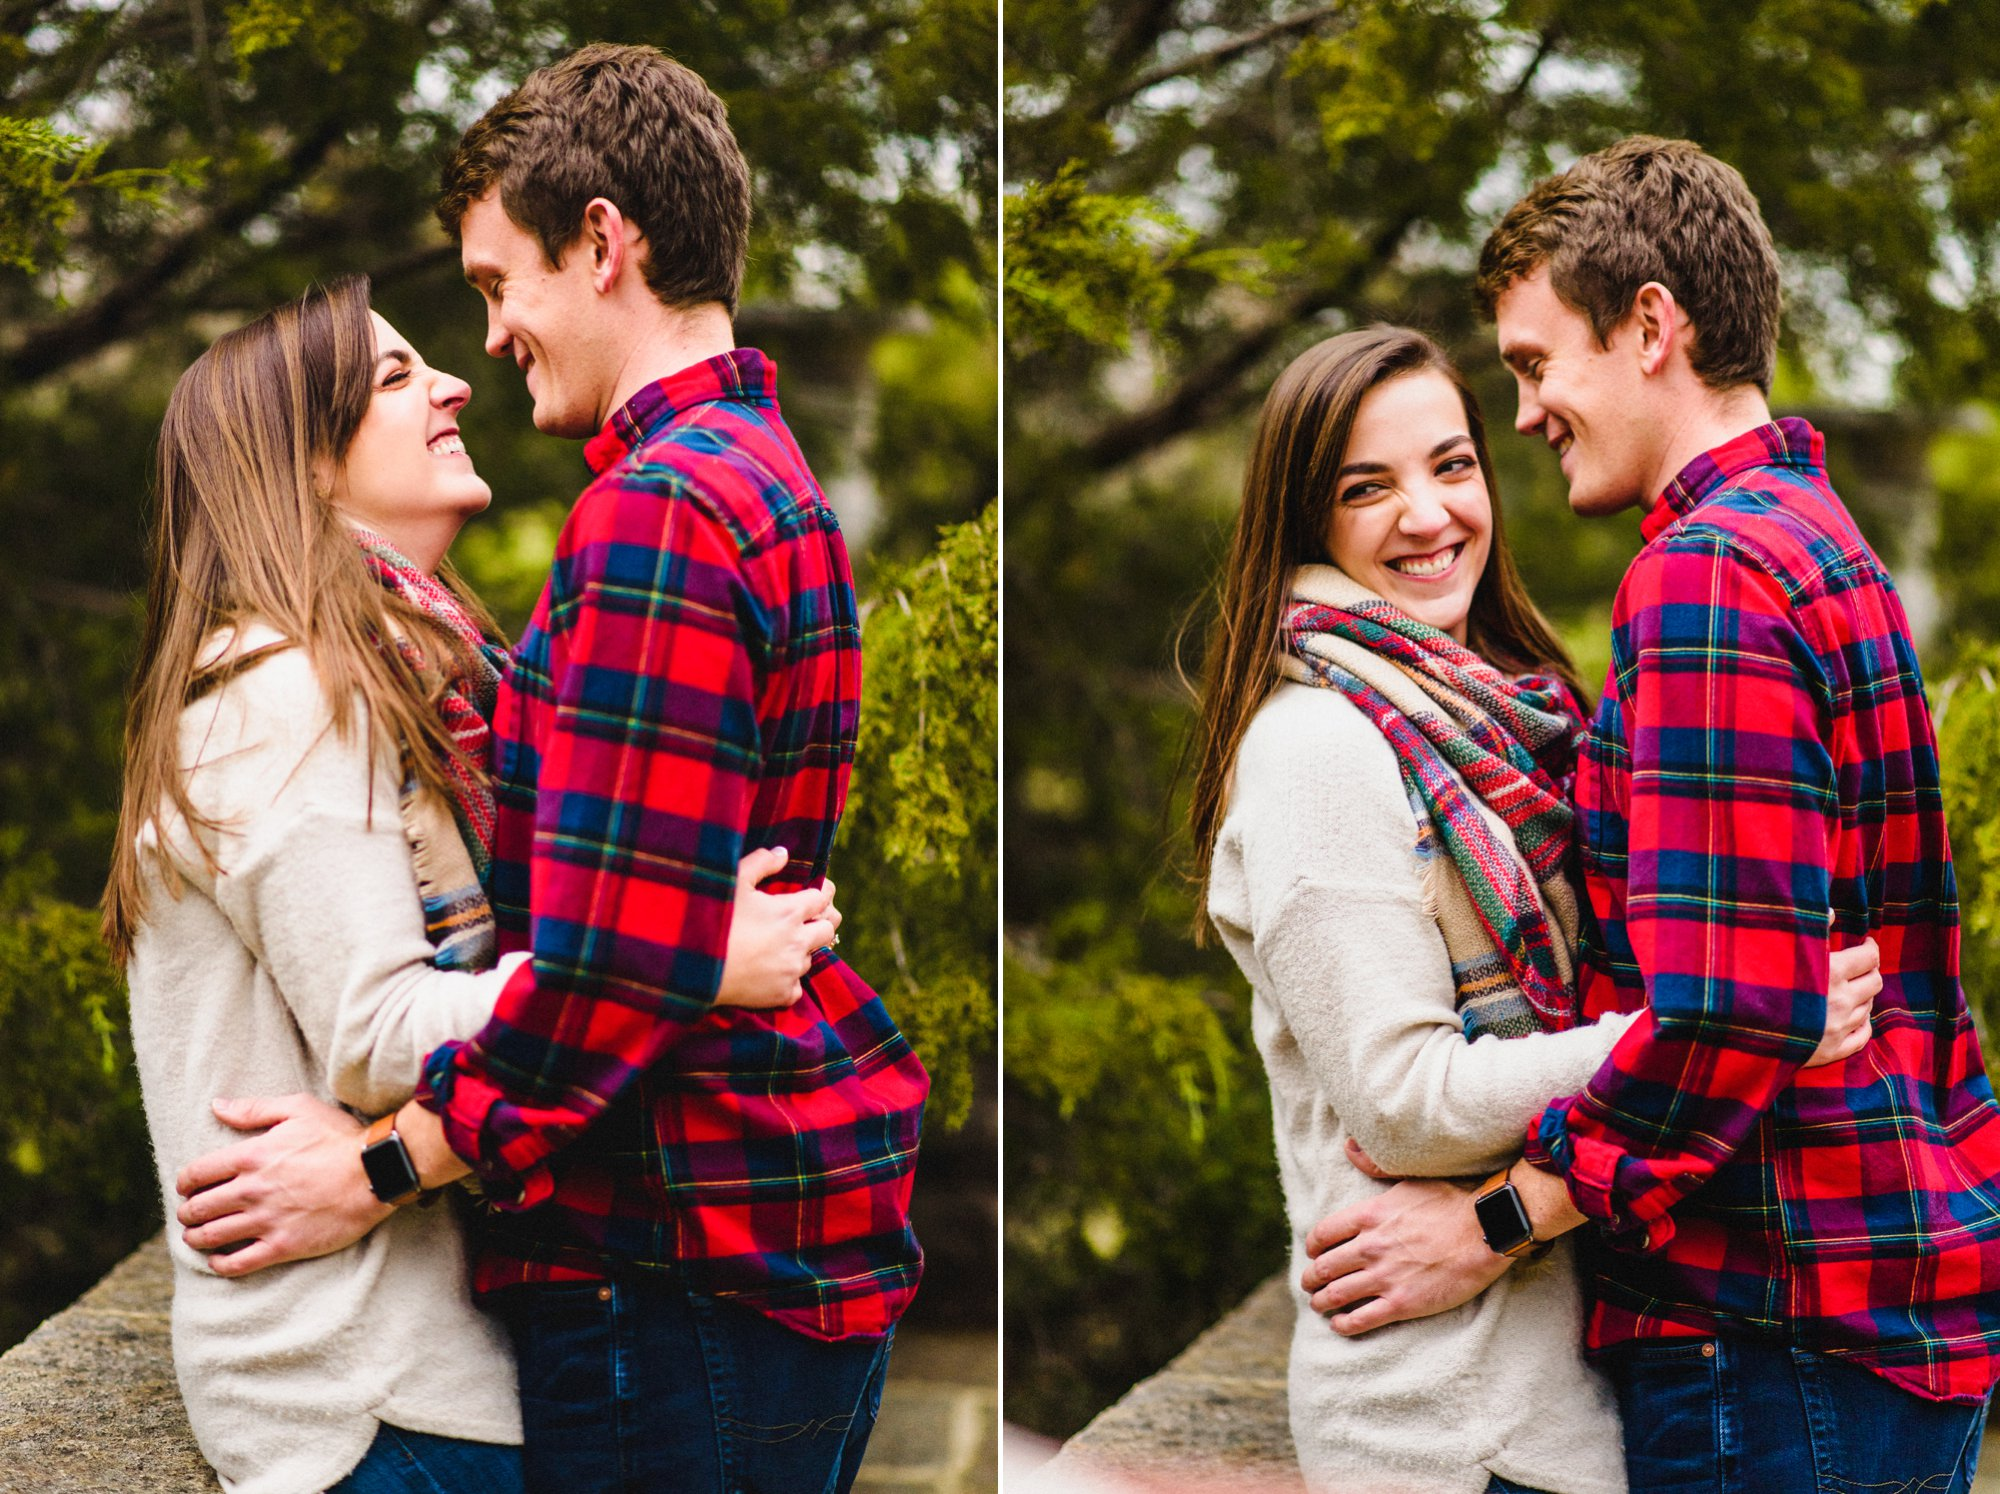 engagement-photography-88-love-stories-31.jpg